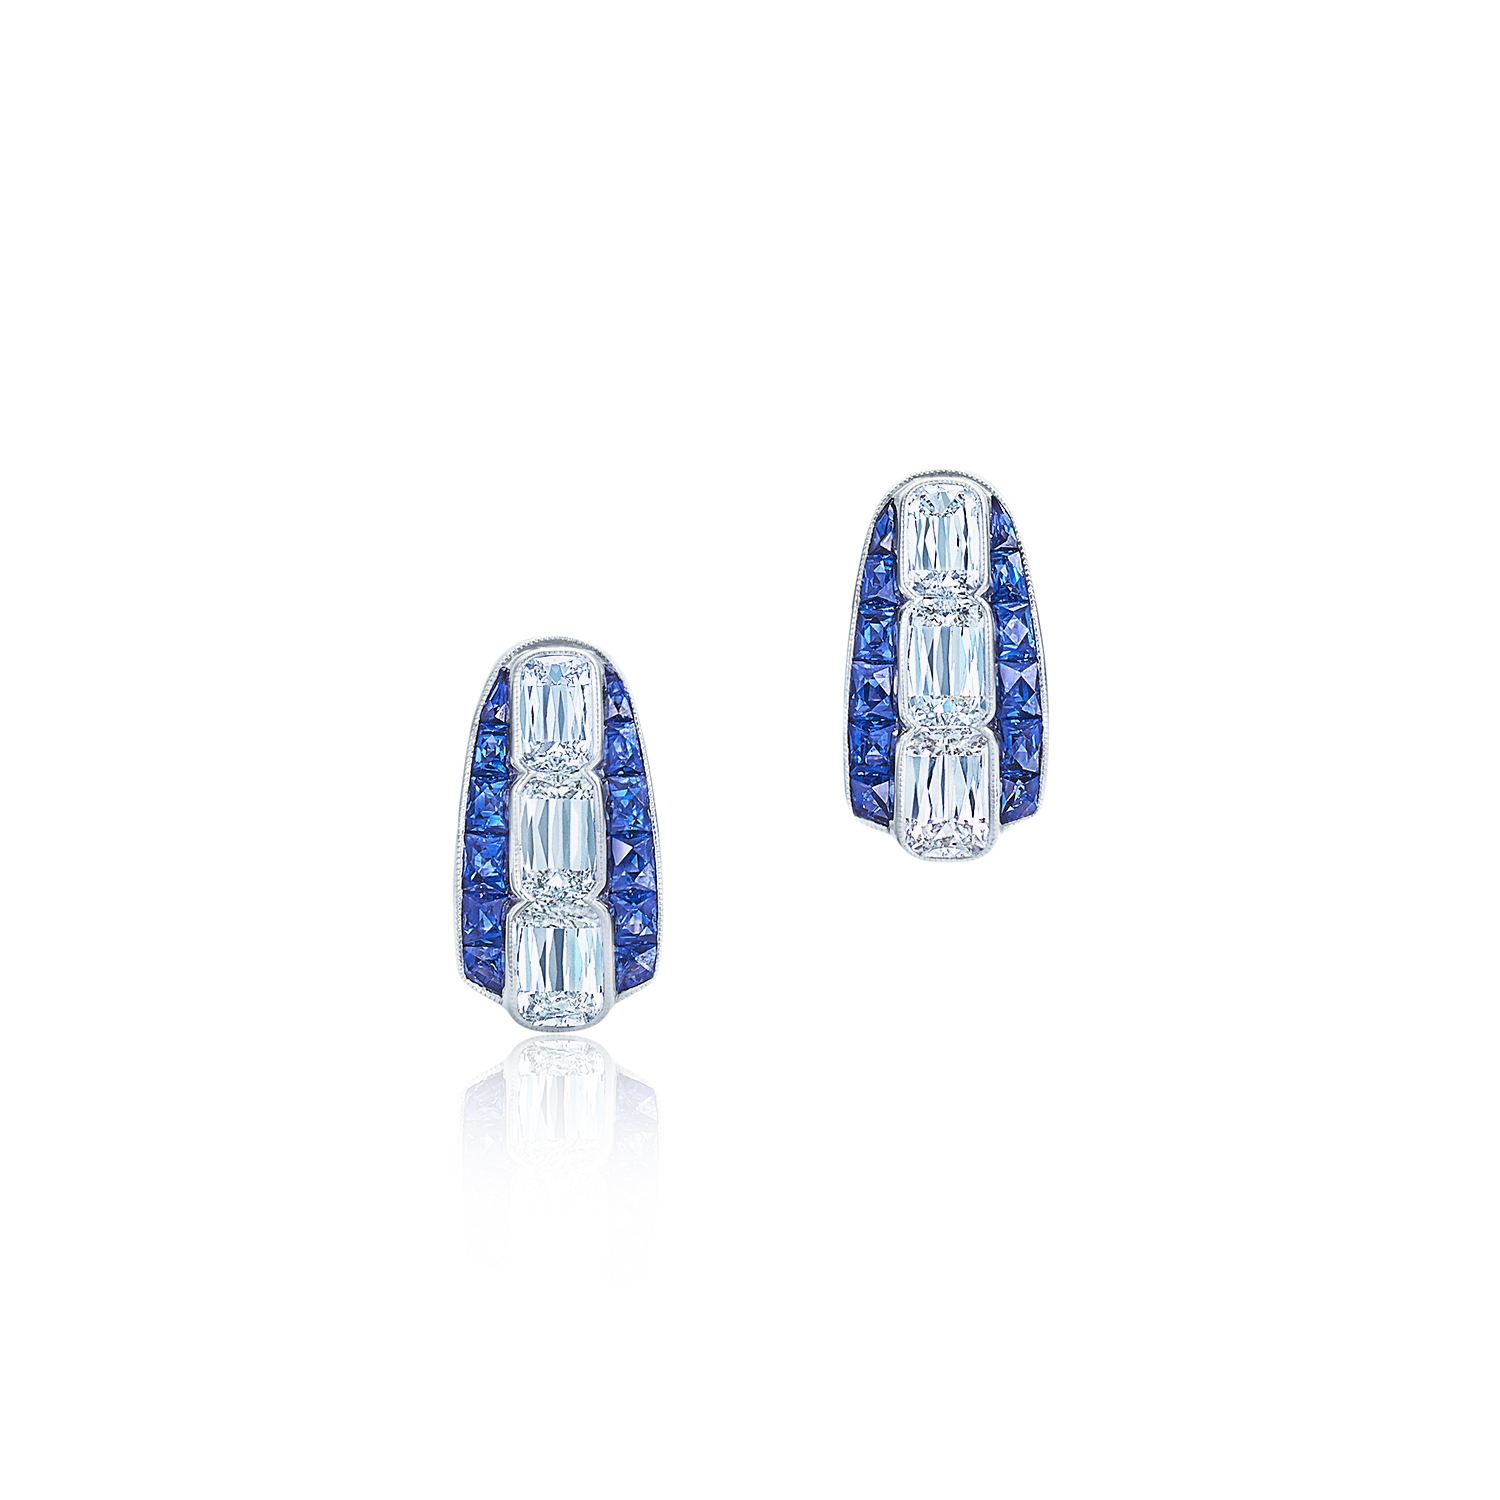 kwait miscpieces brilliant blue clarity strong medium kwiat cut one e carat fluorescence time diamond color d studs pieces matched